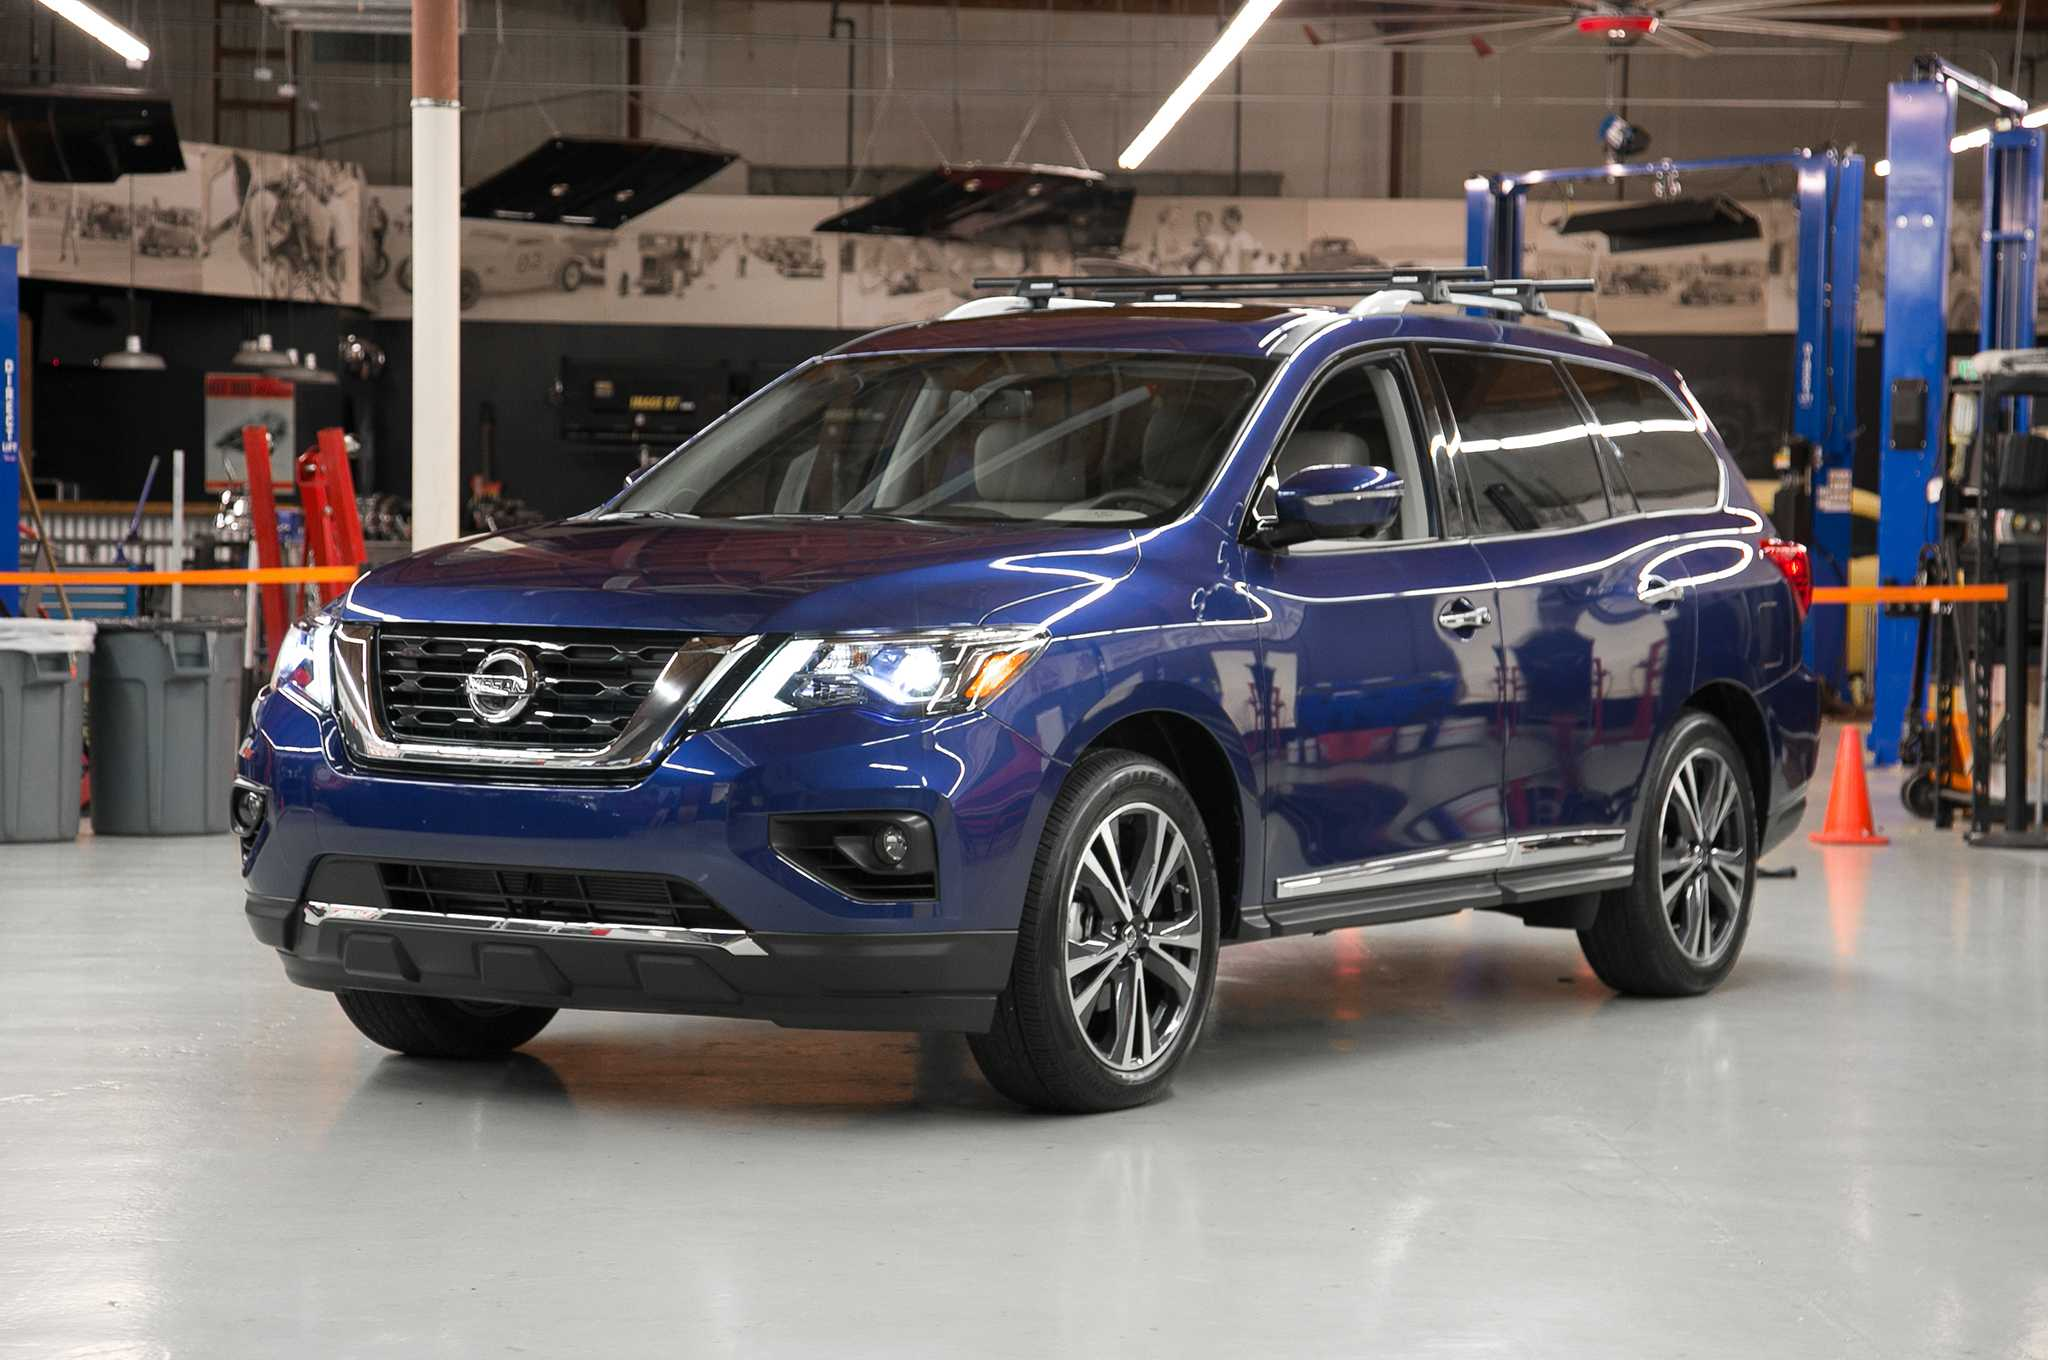 2017 Nissan Pathfinder Removes Hybrid Powertain From Its Lineup